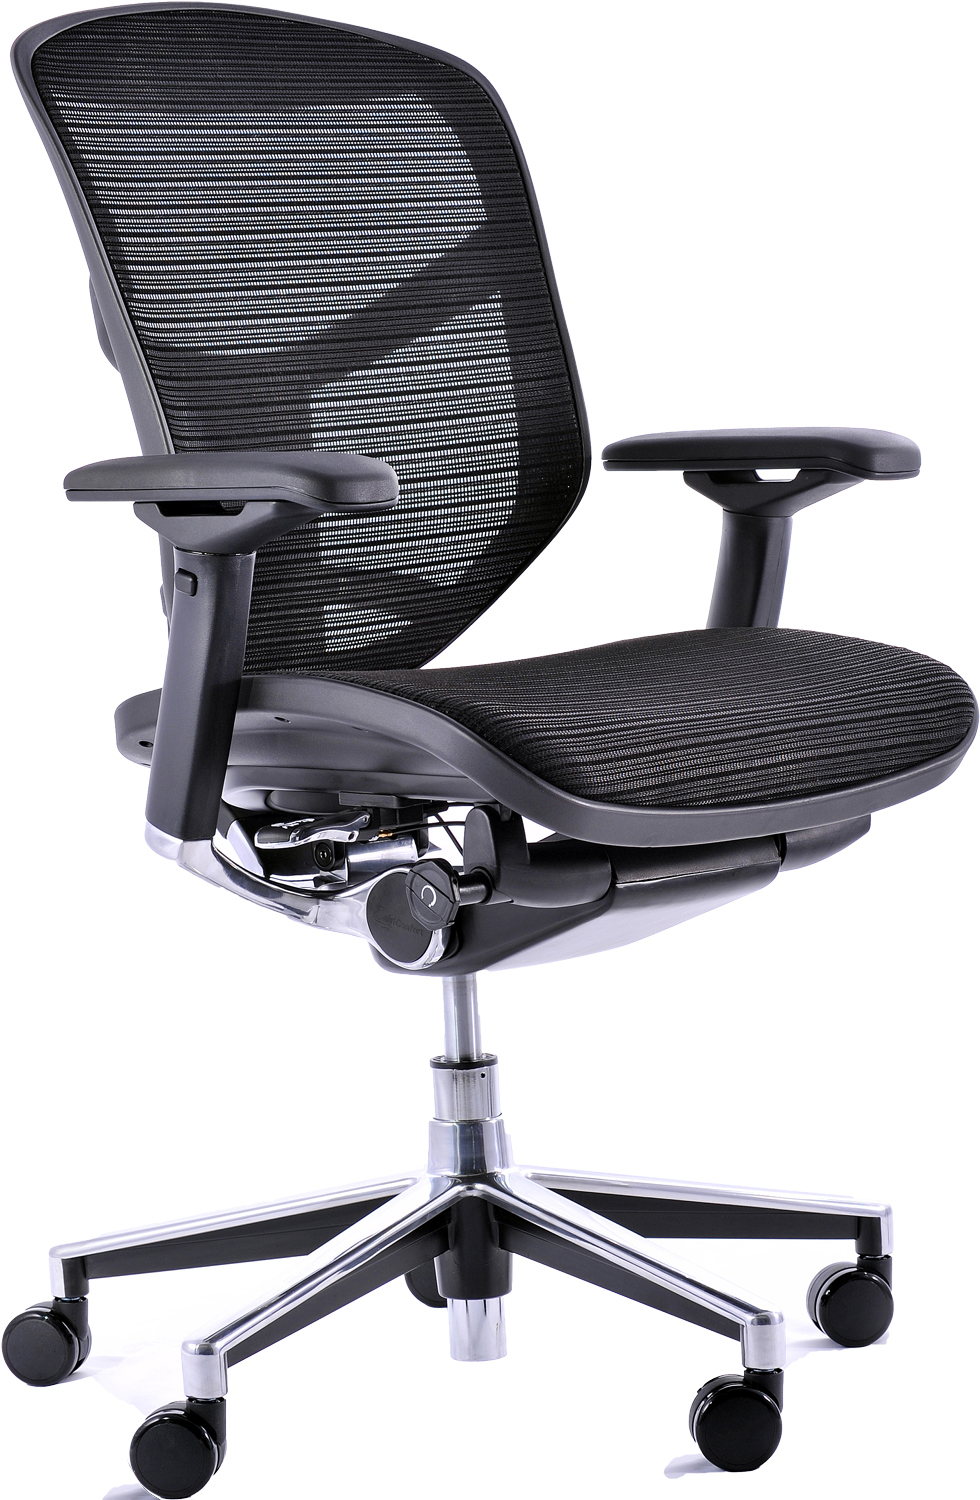 Office Furniture: Ergonomic Office Chair Bangalore